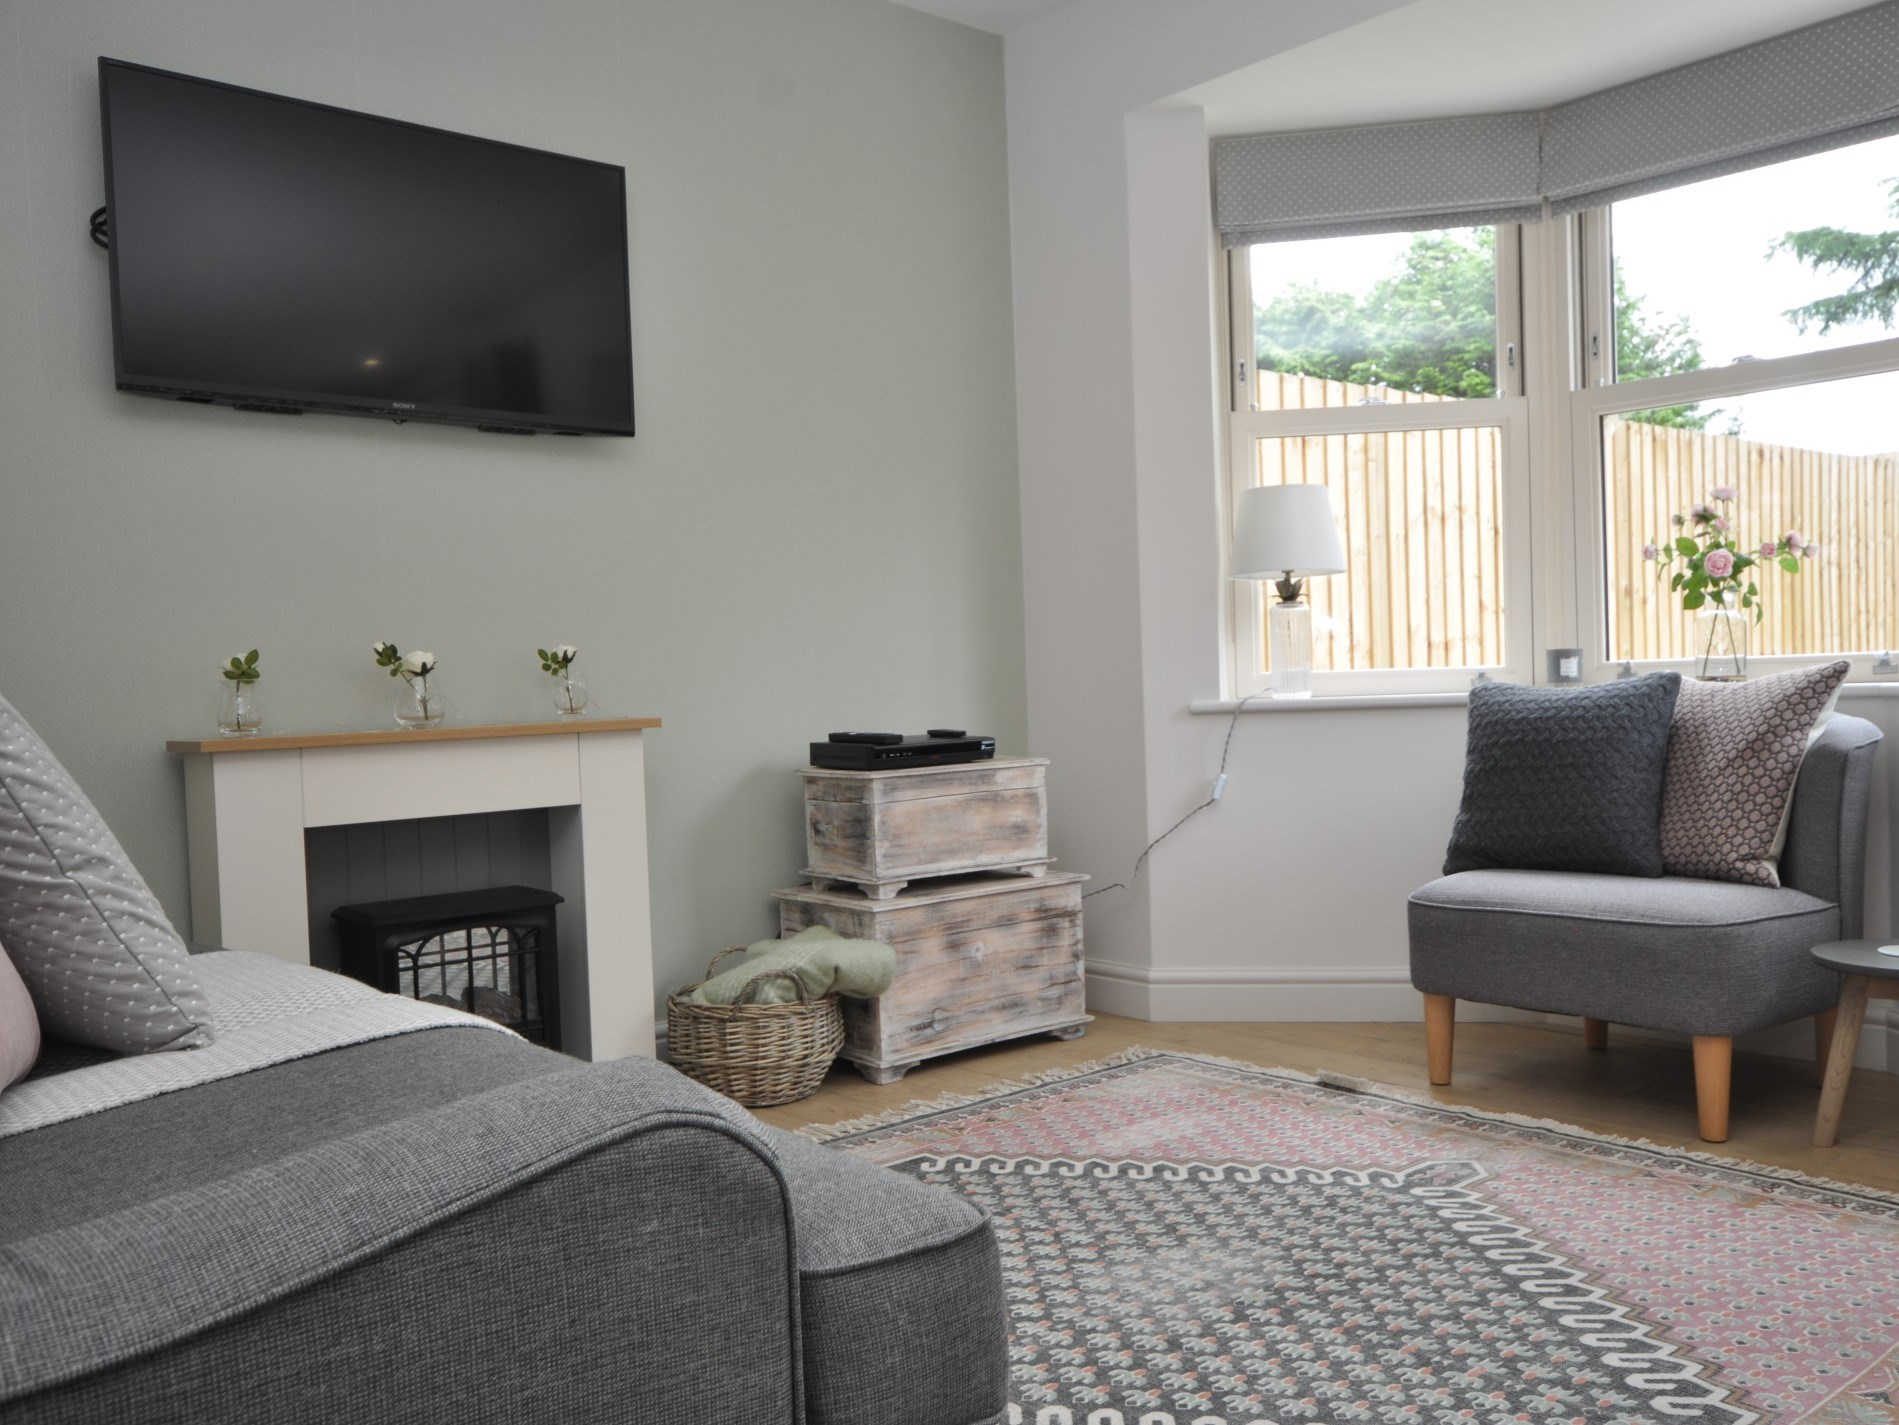 Beautifully furnished with soft colours and fabrics